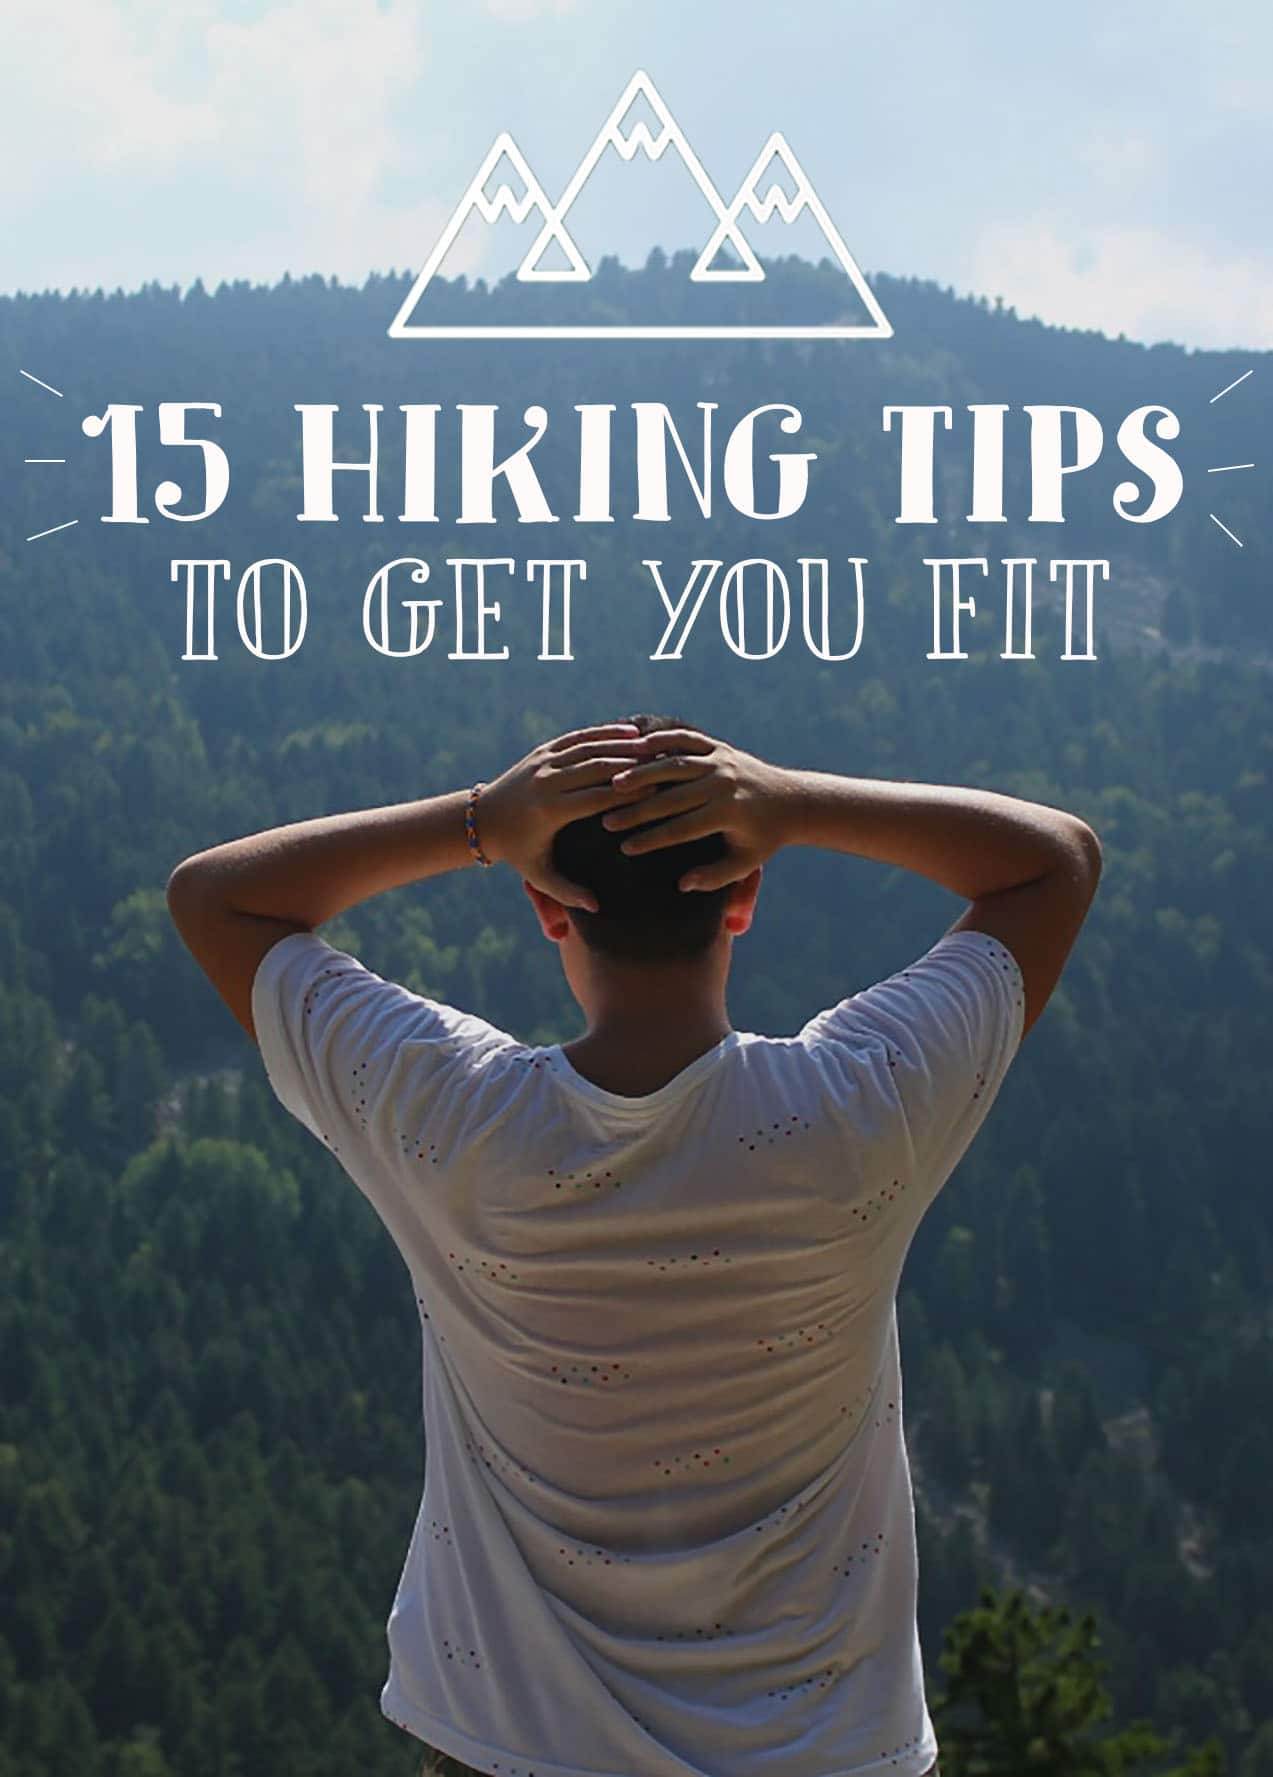 The Best Hiking Tips To Get Fit On The Trail - Hiking For Beginners 4